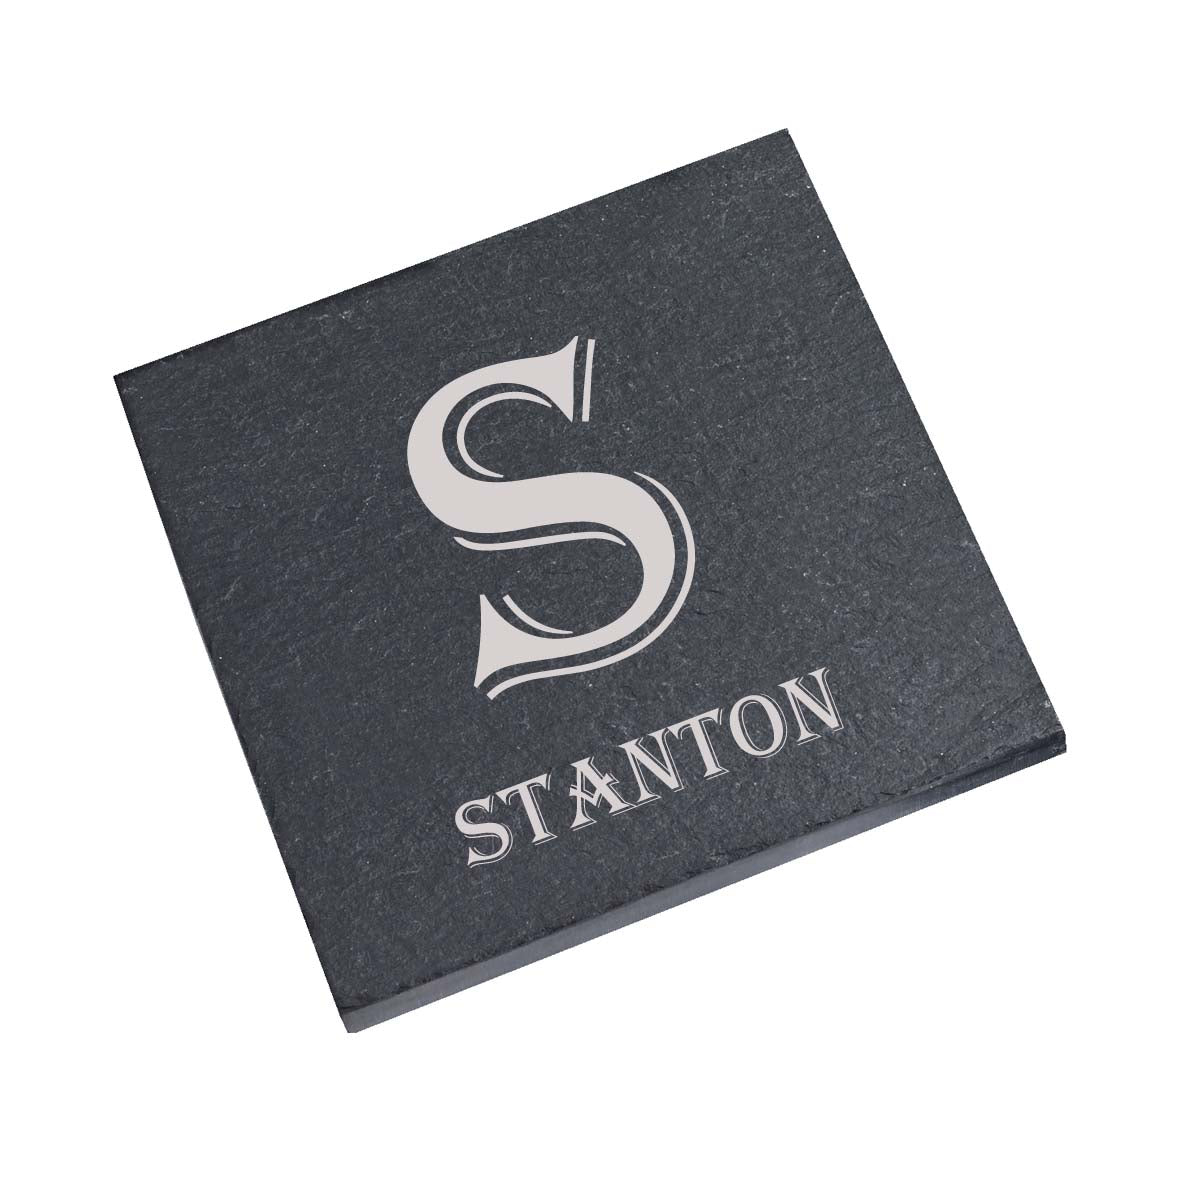 STANTON Personalised Gift Personalised with Any Name